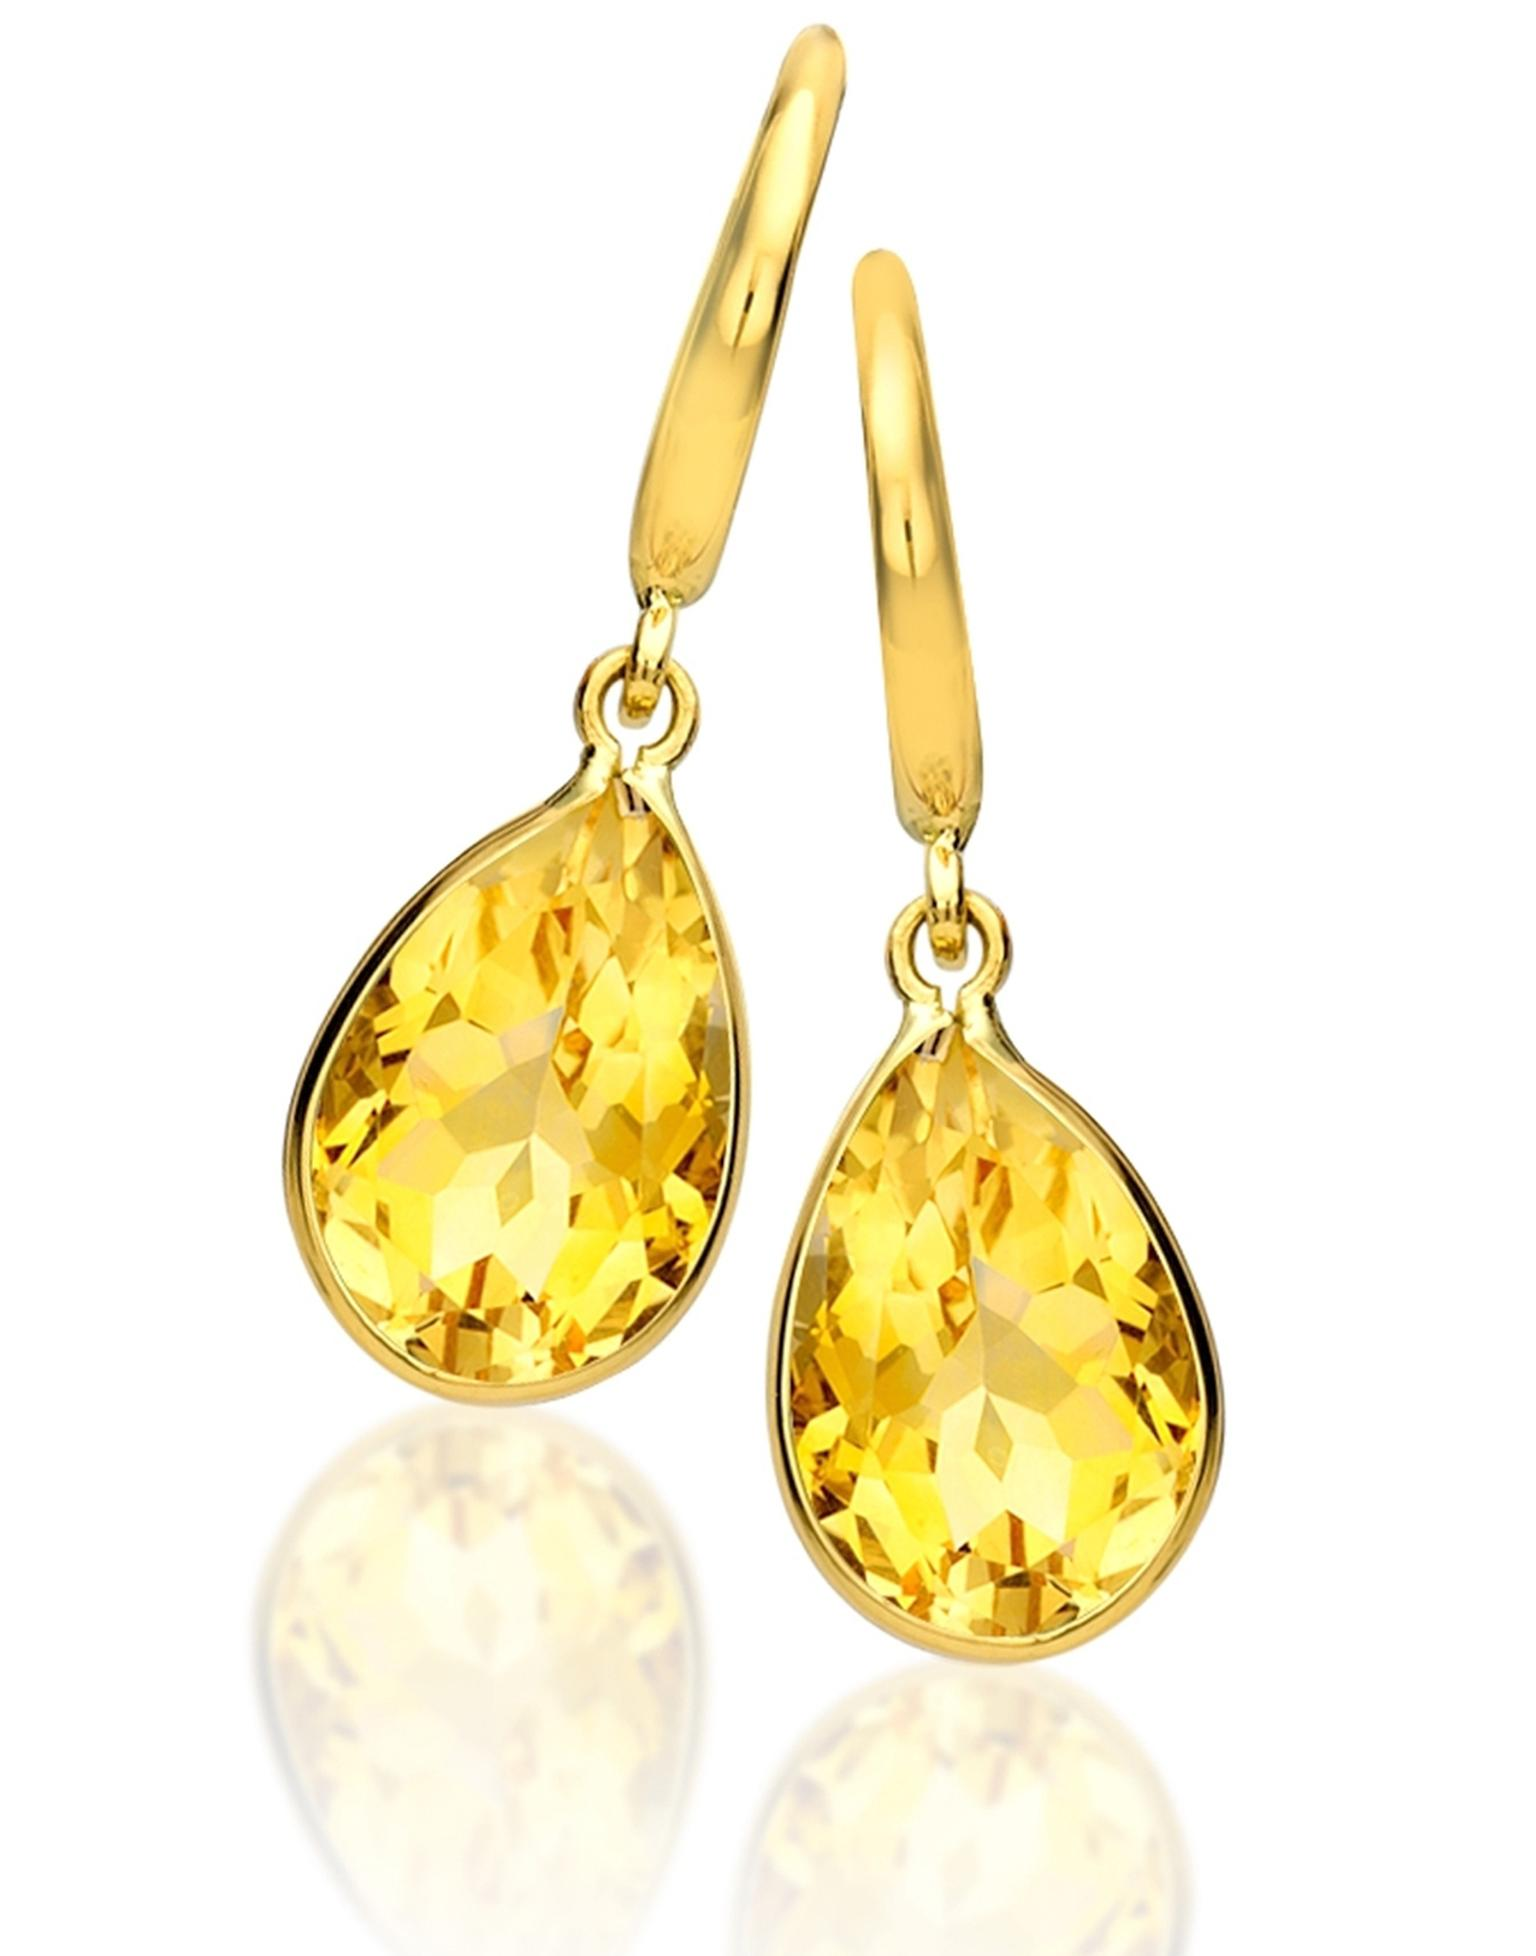 Kiki McDonough Kiki Classic earrings with citrine pear drops (£495)